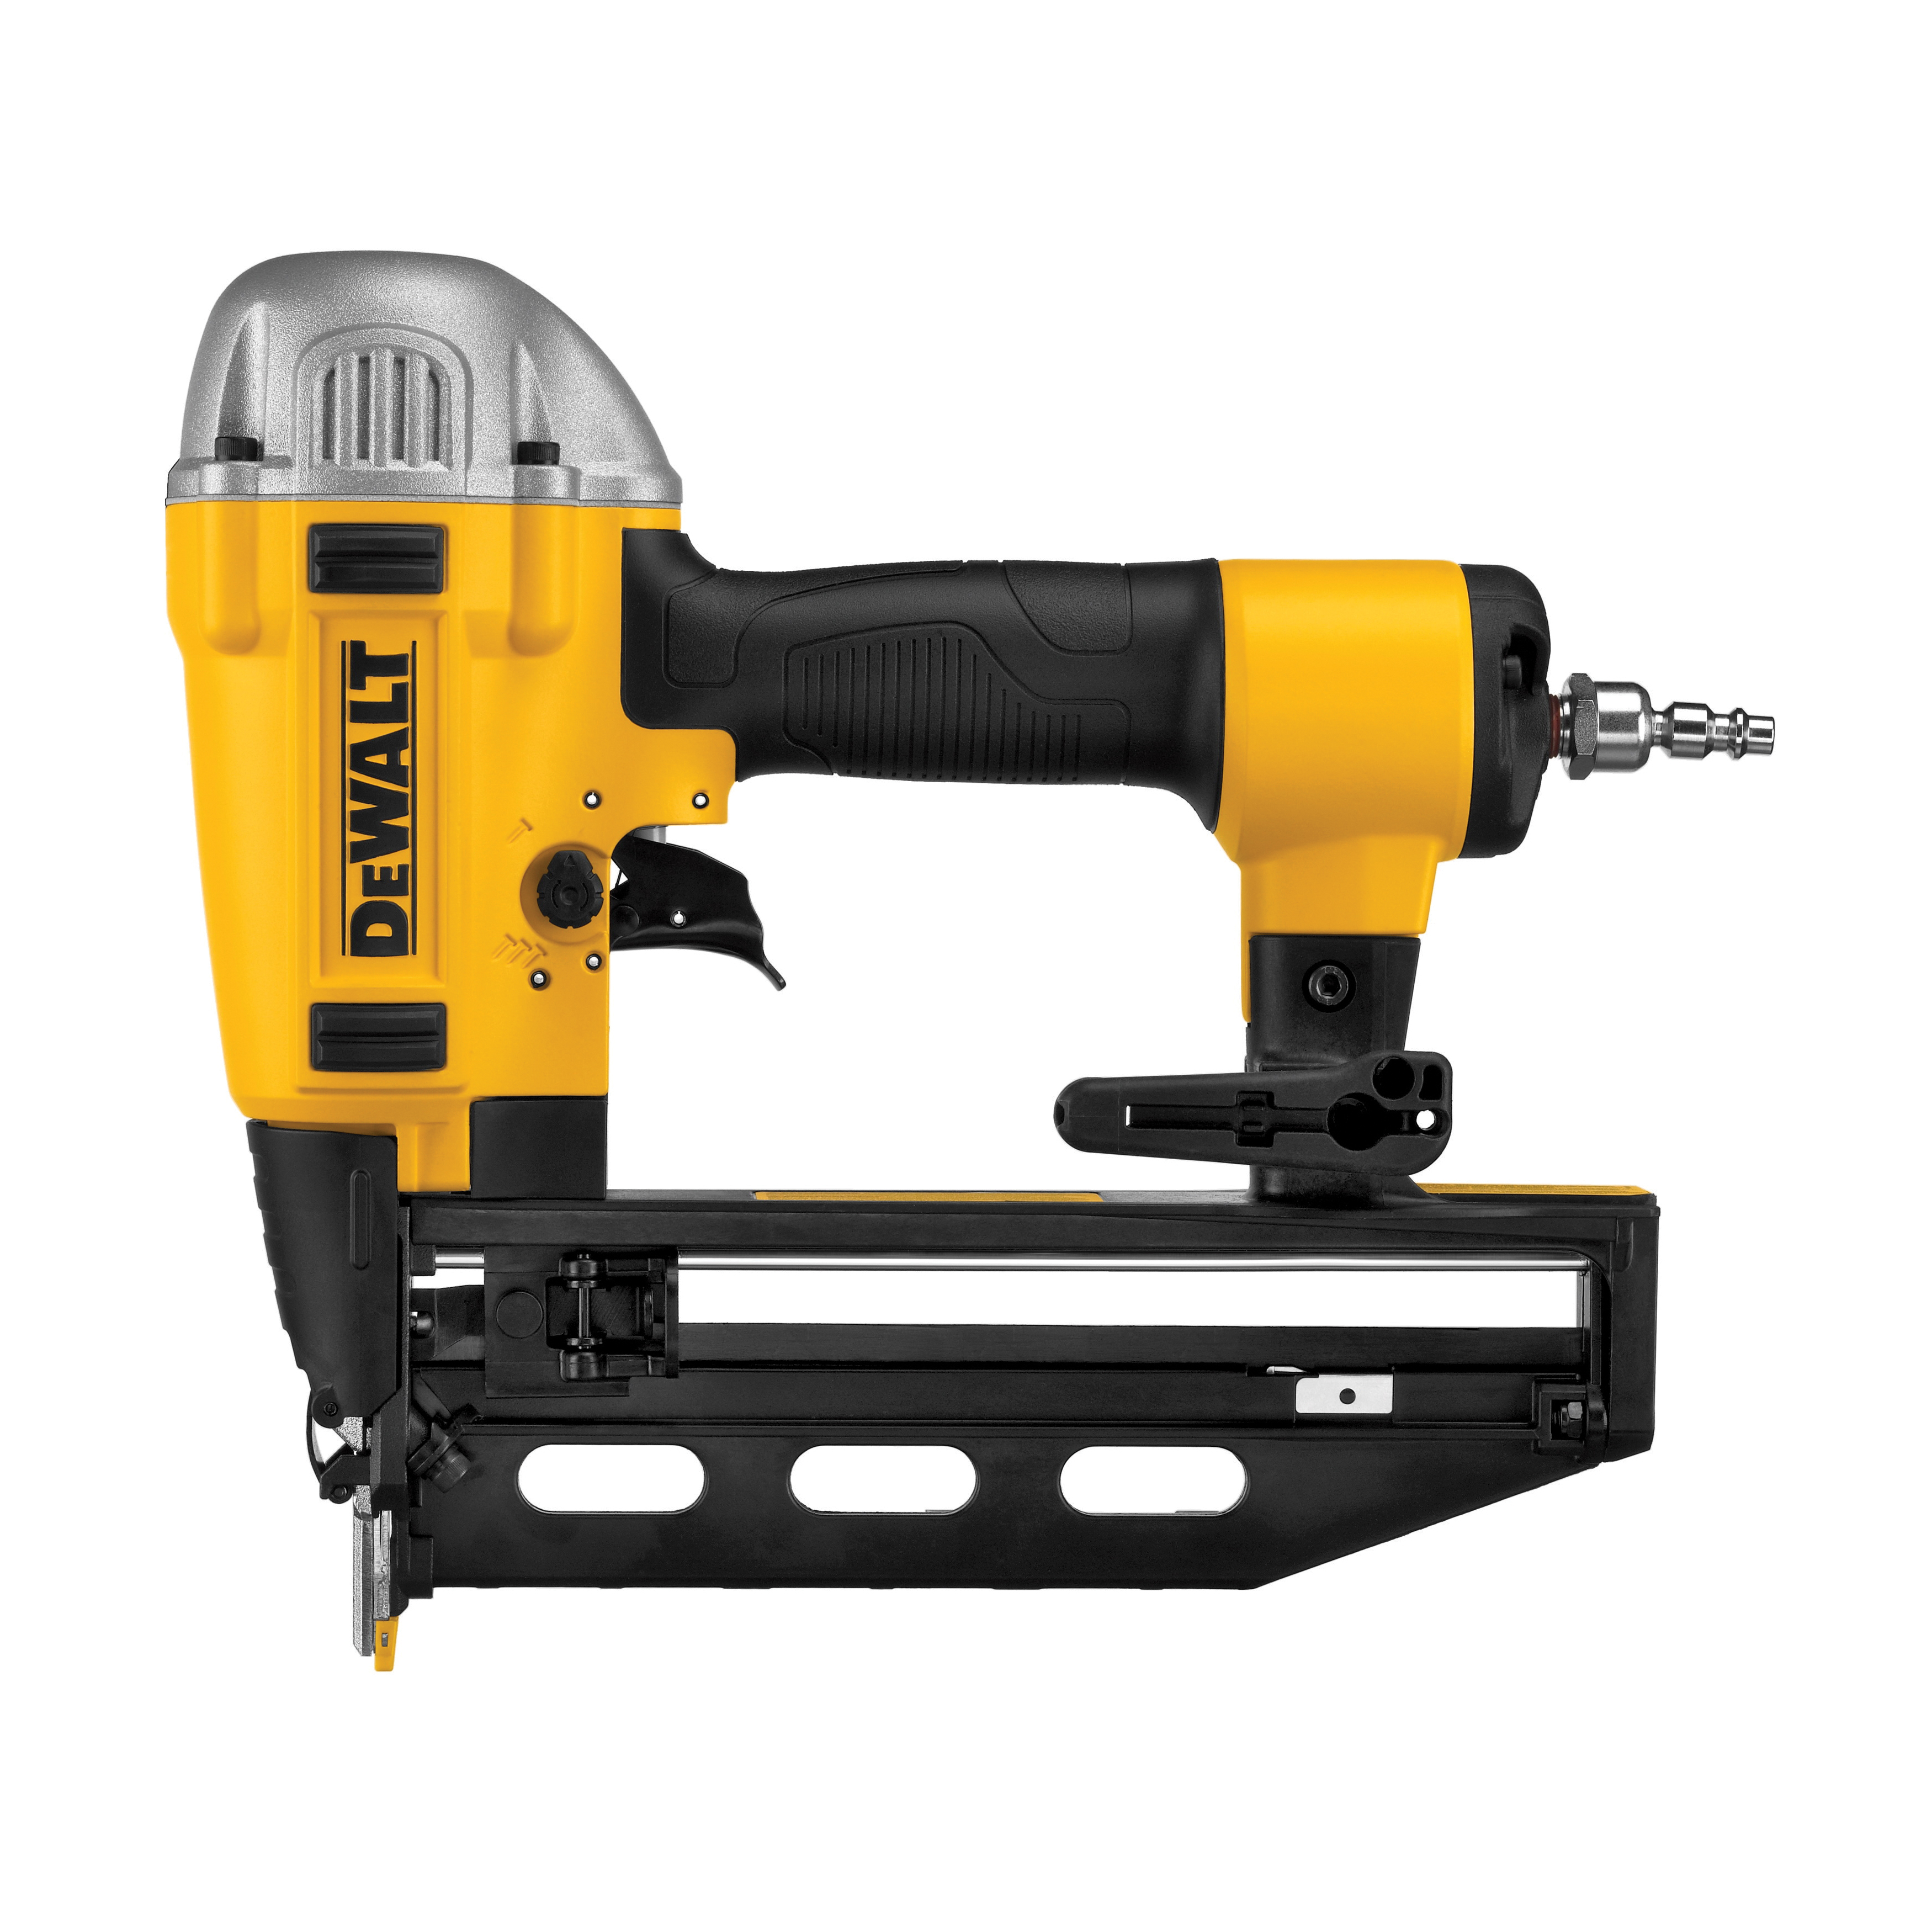 DeWALT® Precision Point™ DWFP71917 Precision Point Finish Nailer Kit, 1-1/4 to 2-1/2 in Fastener, Glue Collation, 100 Nails Magazine, 70 to 120 psi